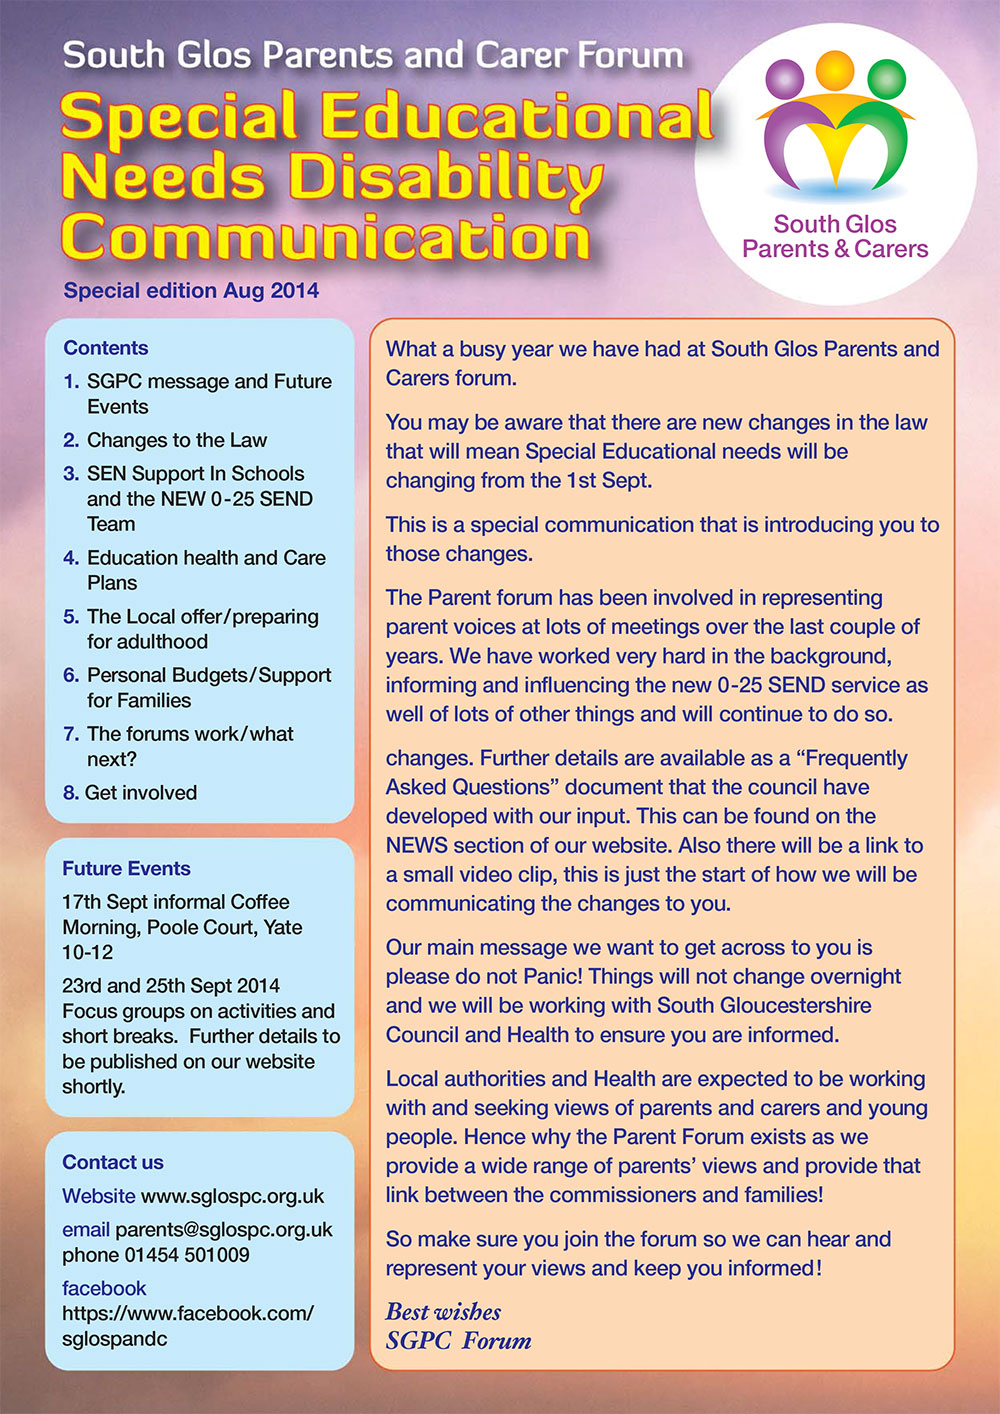 Special Education and Needs Disability Communication Brochure